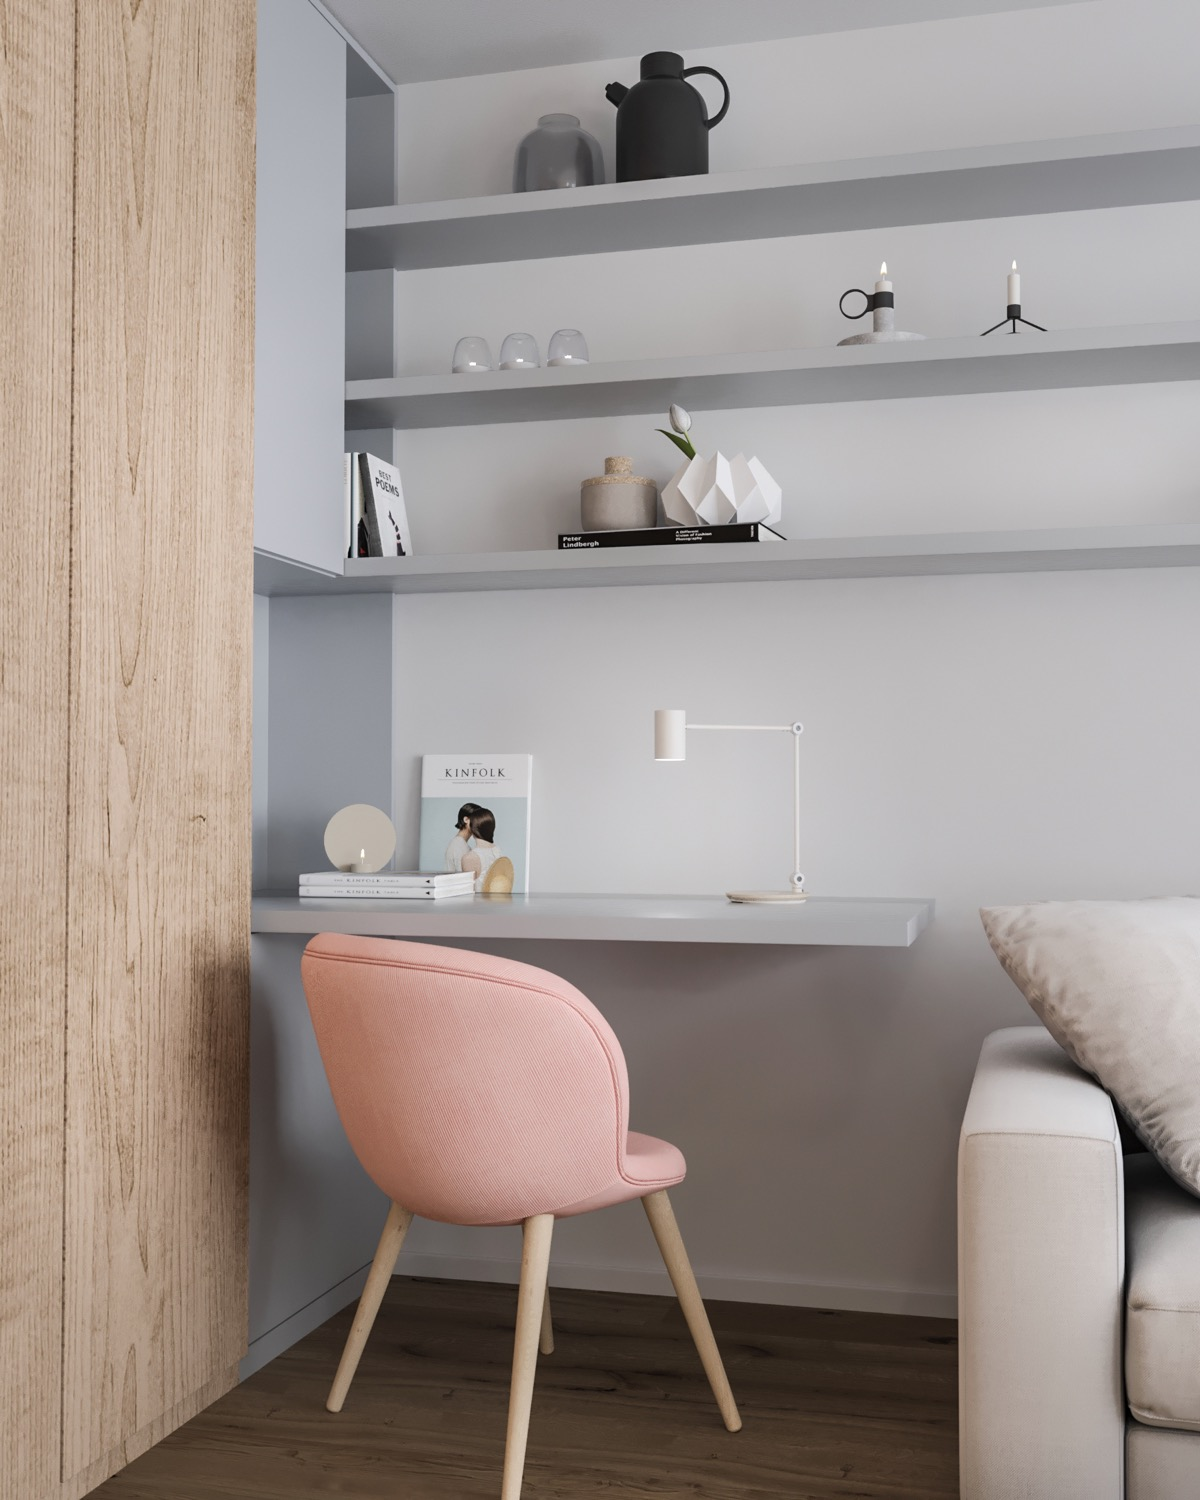 37 Minimalist Home Offices That Sport Simple But Stylish Workspaces images 26